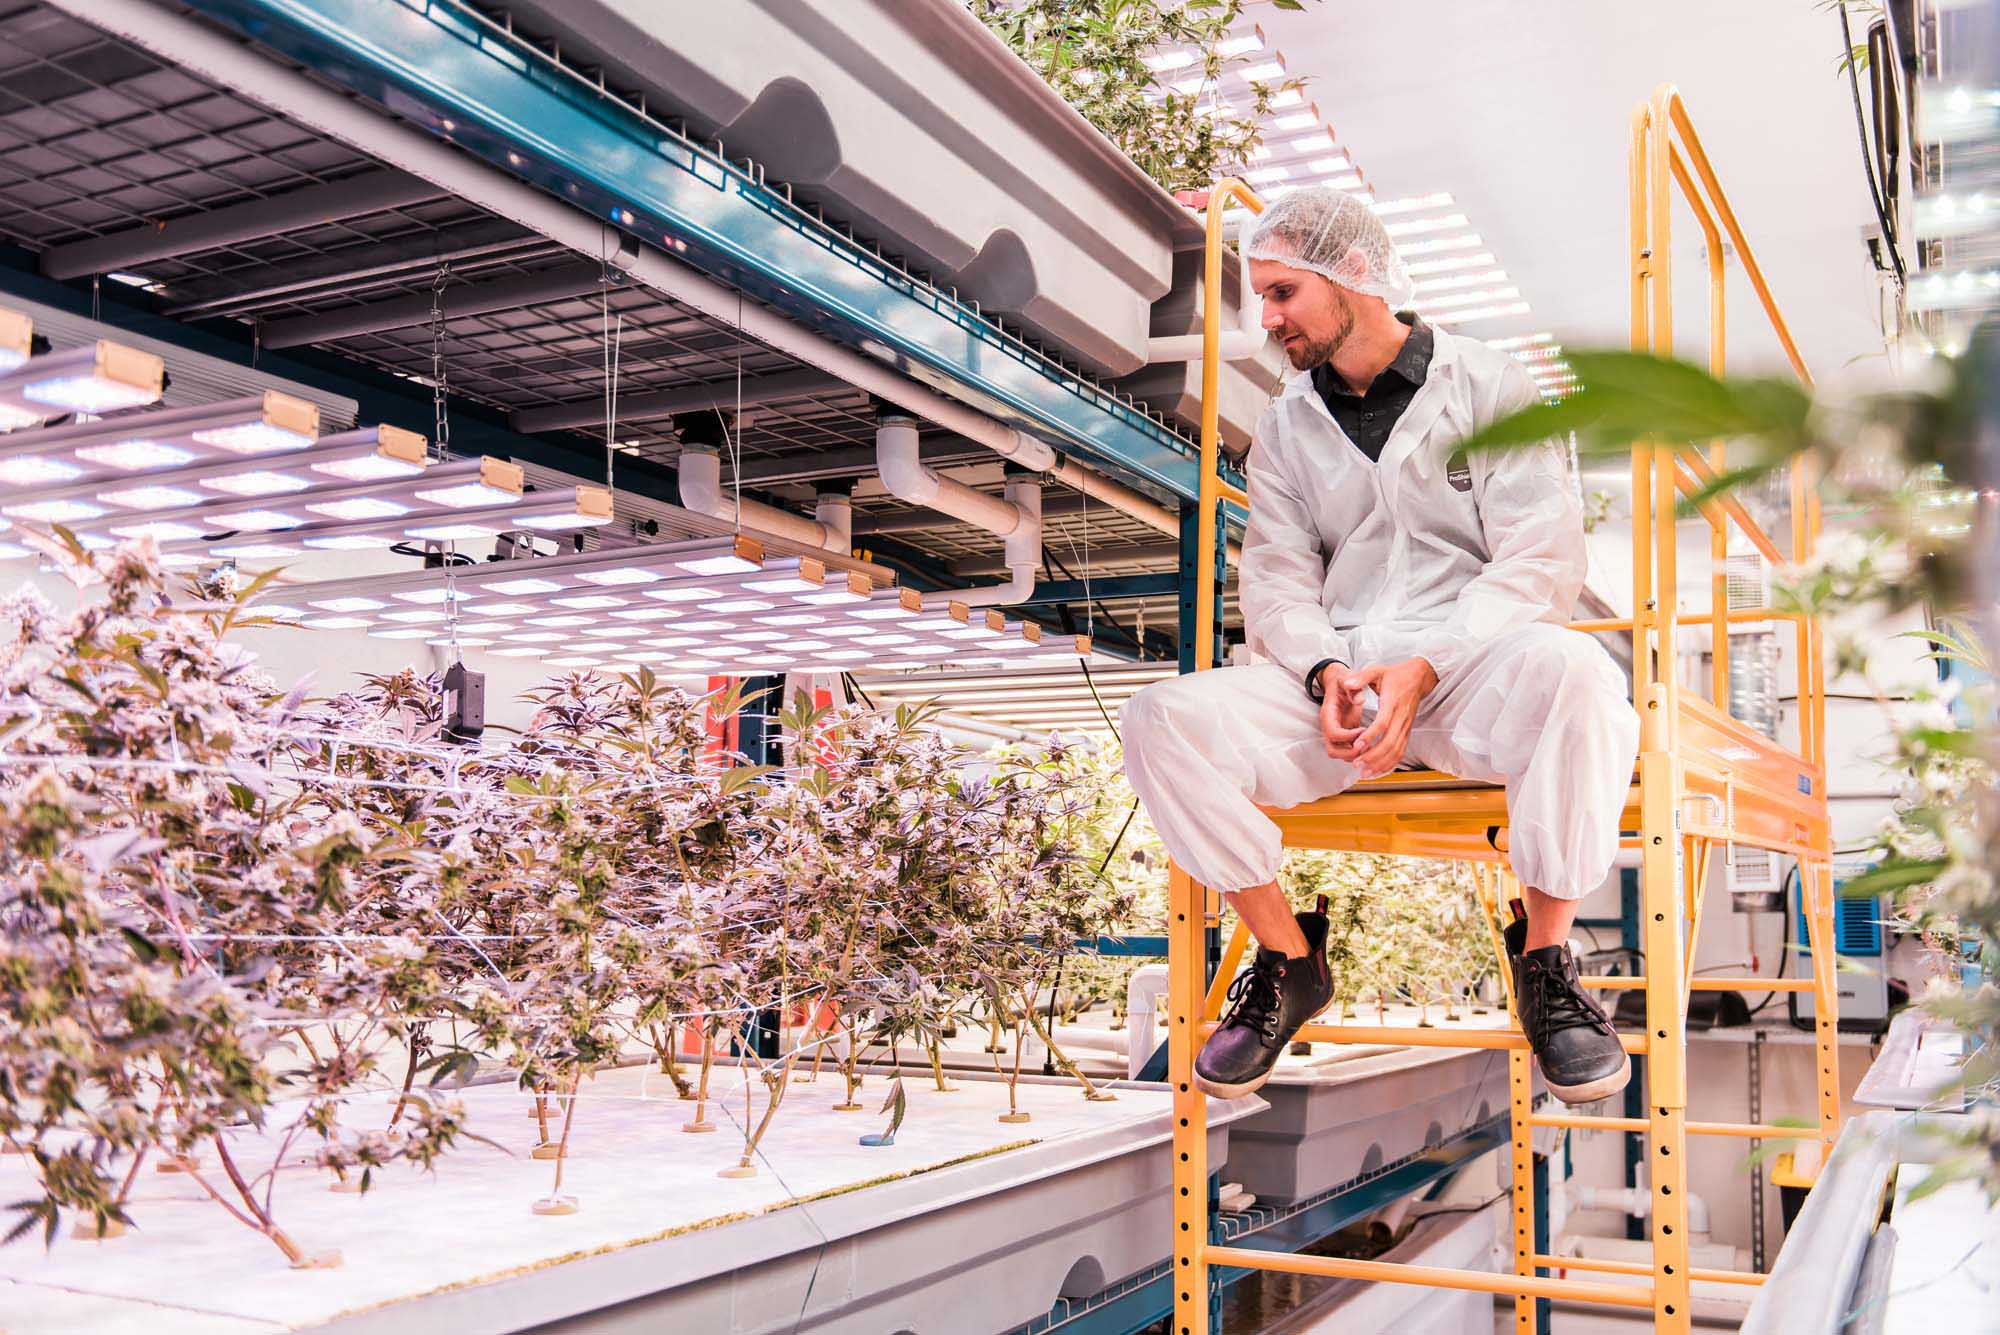 man sitting on scaffolding looking at rows of cannabis plants in hydroponic grow facility